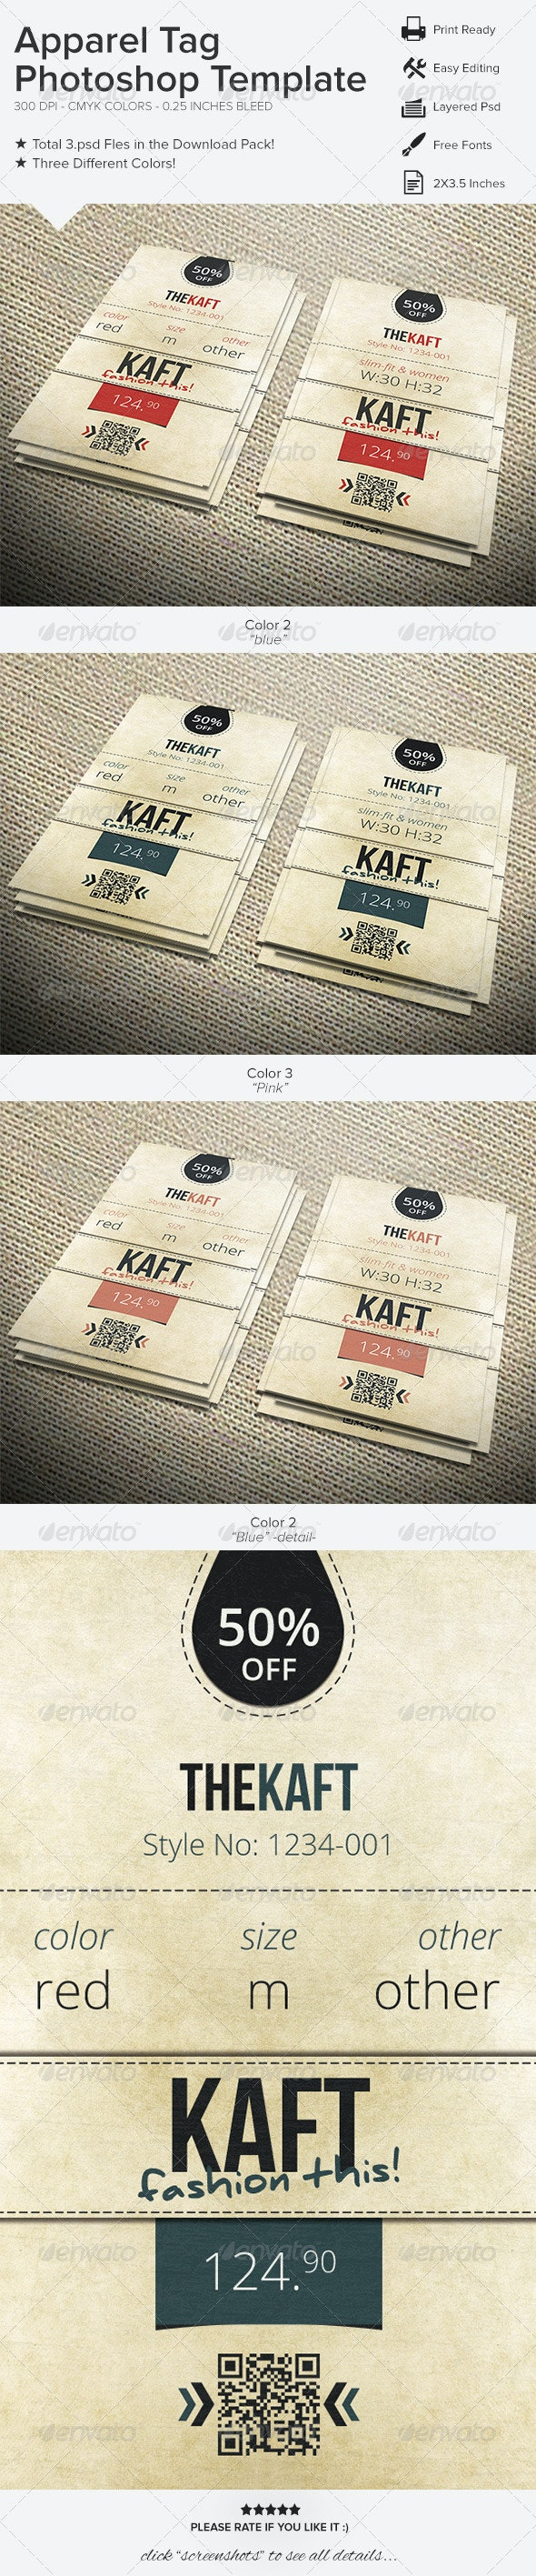 Apparel Tag Photoshop Template - Miscellaneous Print Templates